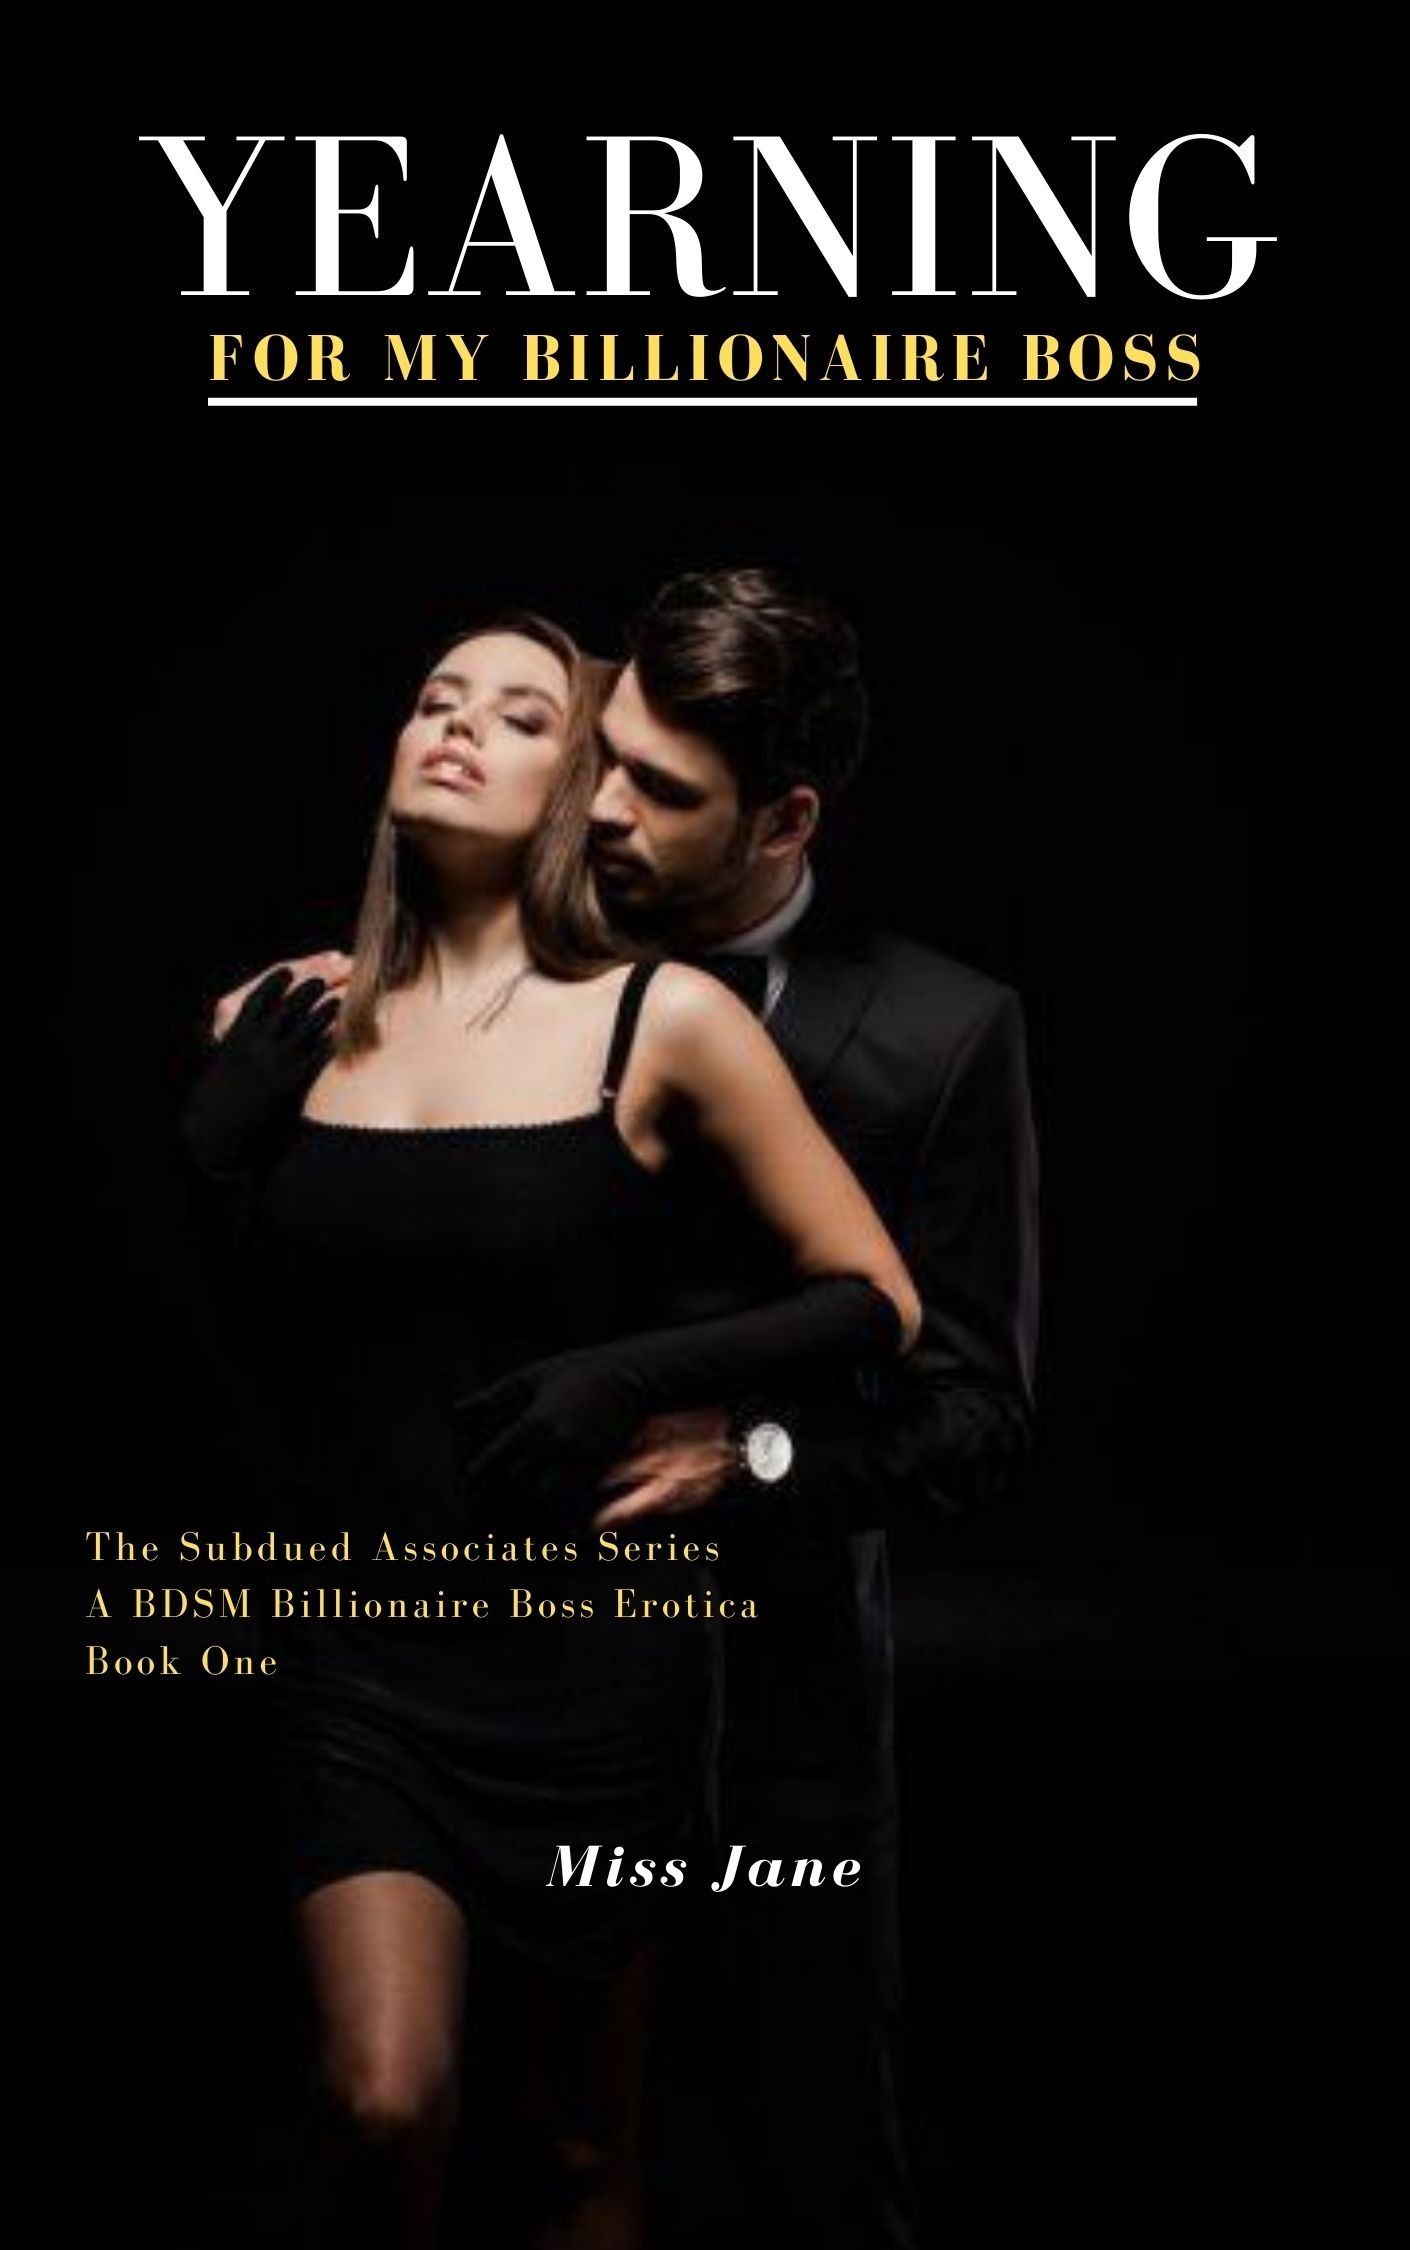 YEARNING FOR MY BILLIONAIRE BOSS: BOOK 1 SUBDUED ASSOCIATES SERIE